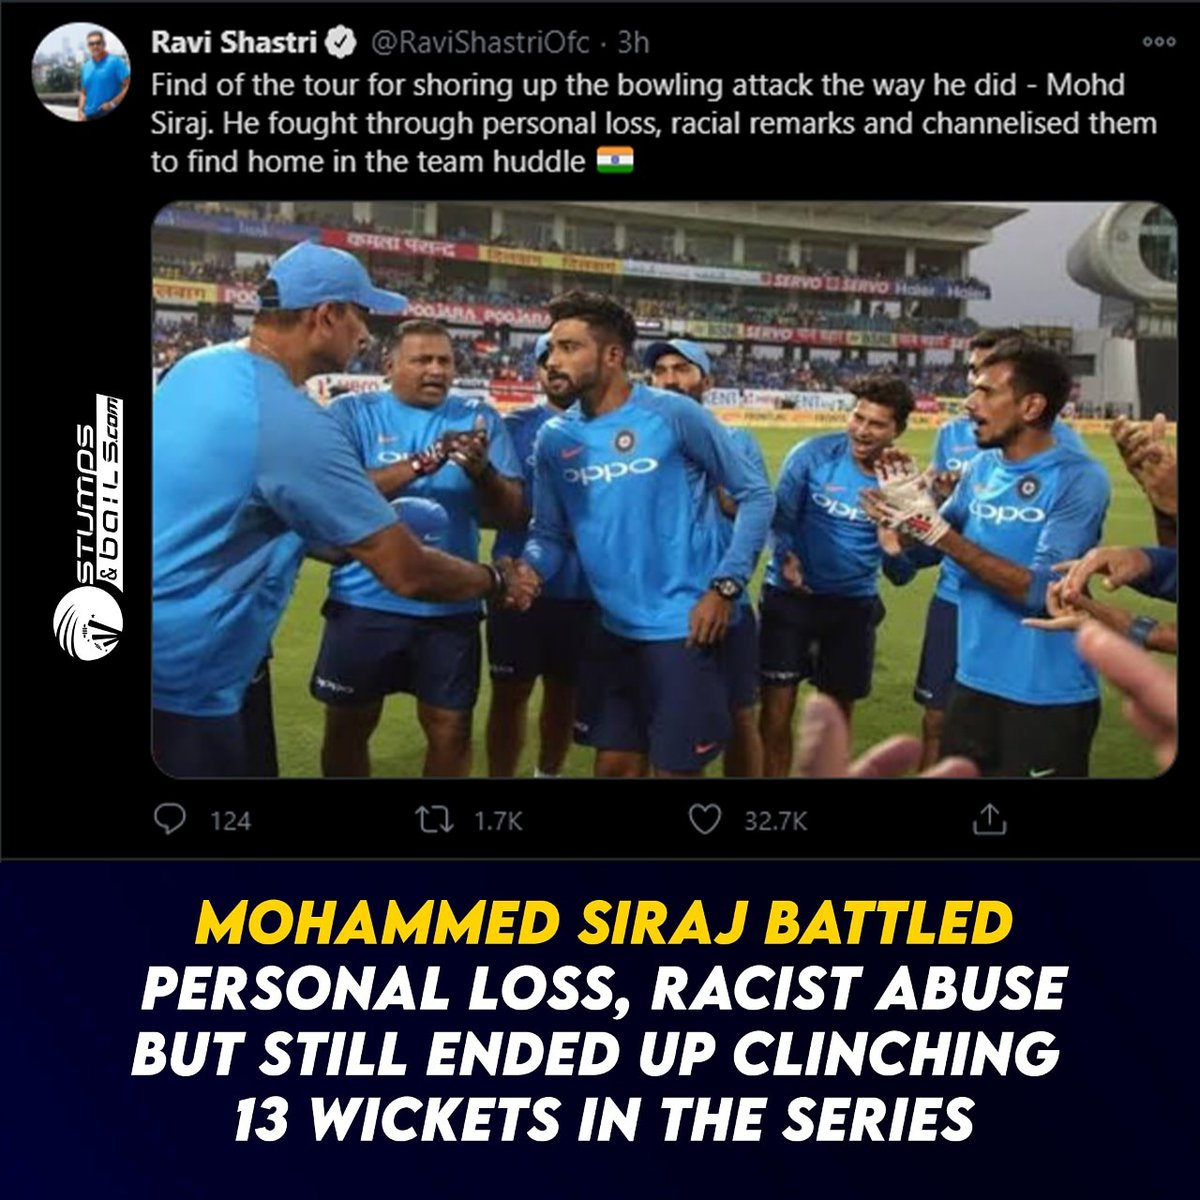 @RaviShastriOfc appreciated the 26-year-old pacer #MohammedSiraj  Follow us @stumpnbails #TestCricket #INDvsAUSTest #AUSvsIND #cricketmatch #IndianCricketTeam #TeamIndia #AjinkyaRahane #IPL #IPL2021 #iplauction2021 #IPLRetention #RaviShastri #MohammedSiraj #Cricket